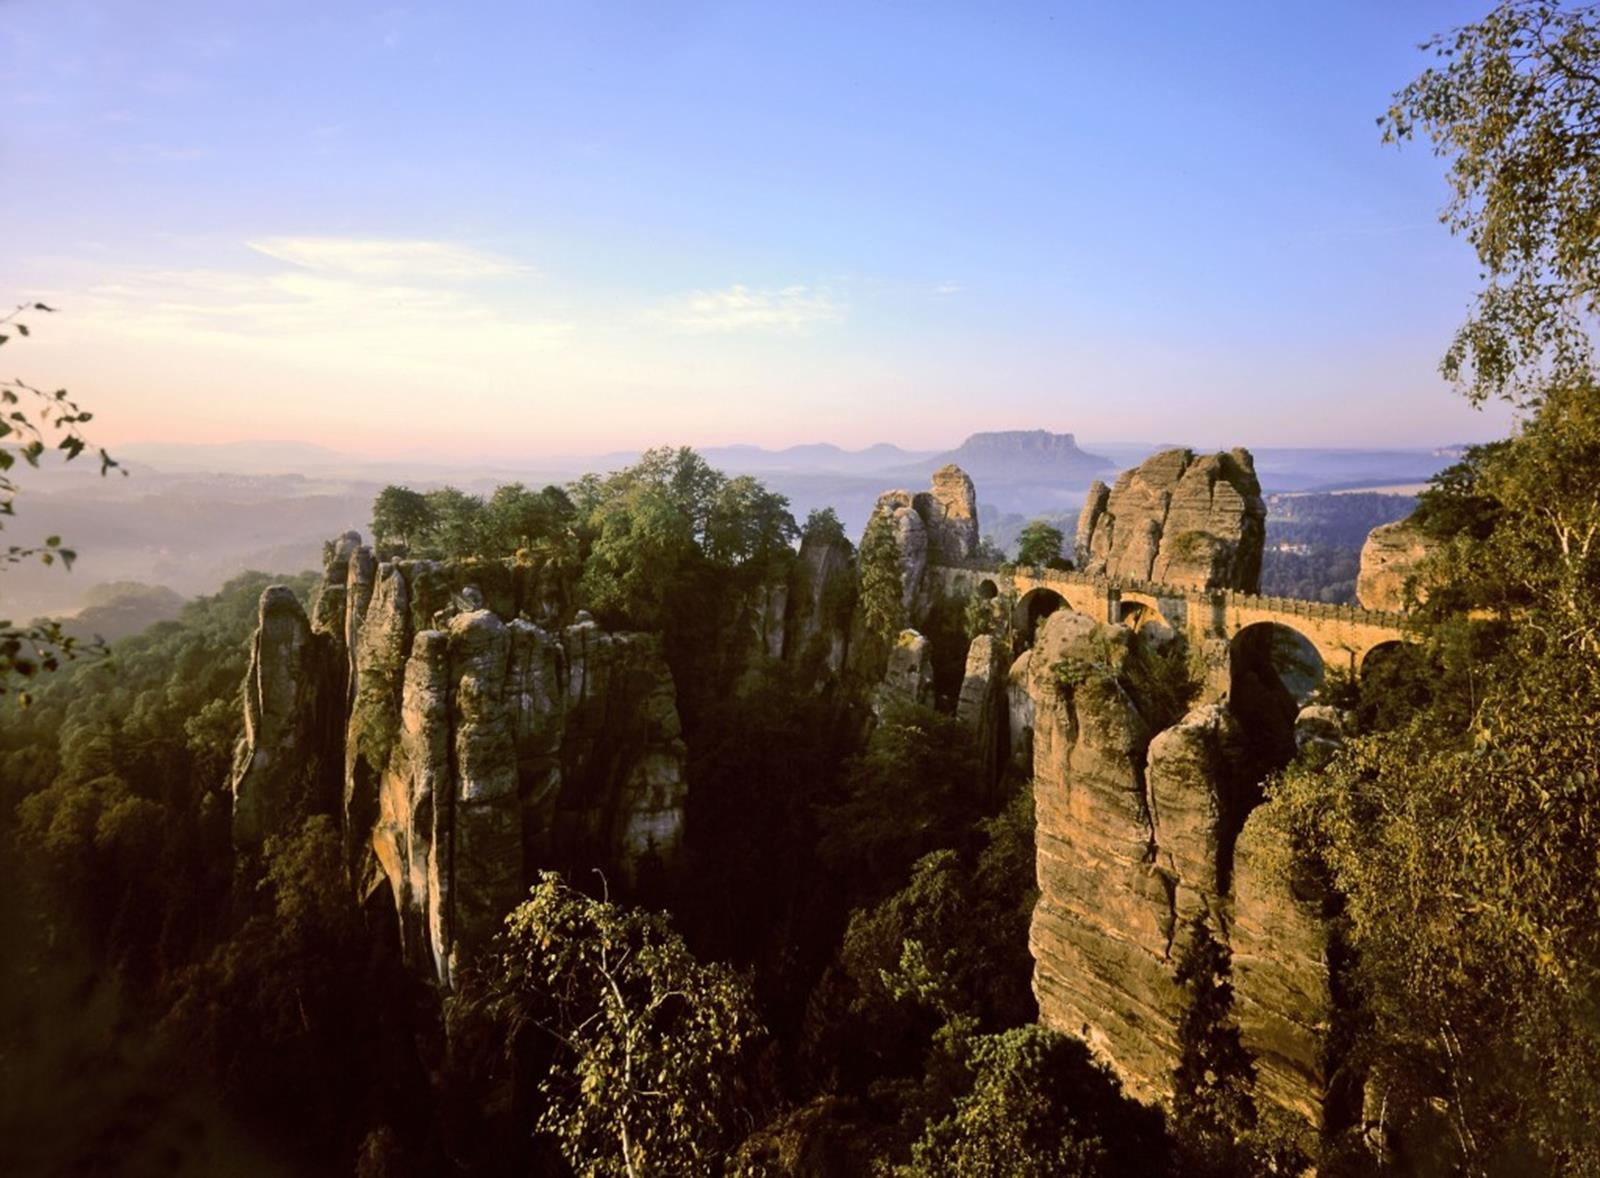 Less than one hour drive from Dresden: the Saxon Switzerland National Park © Sylvio Dittrich